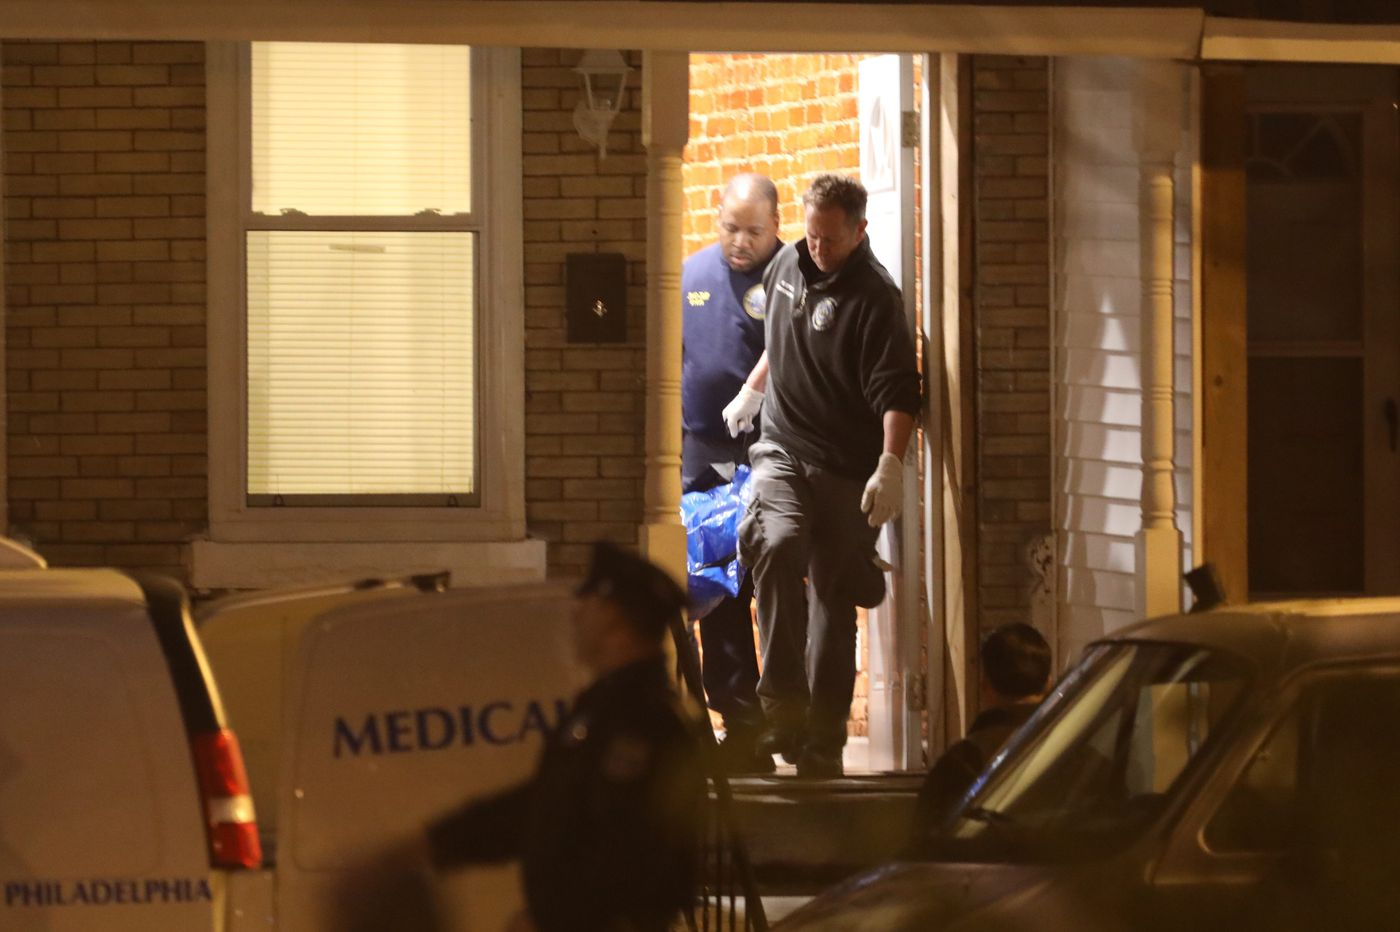 4 found 'executed' in West Philly basement